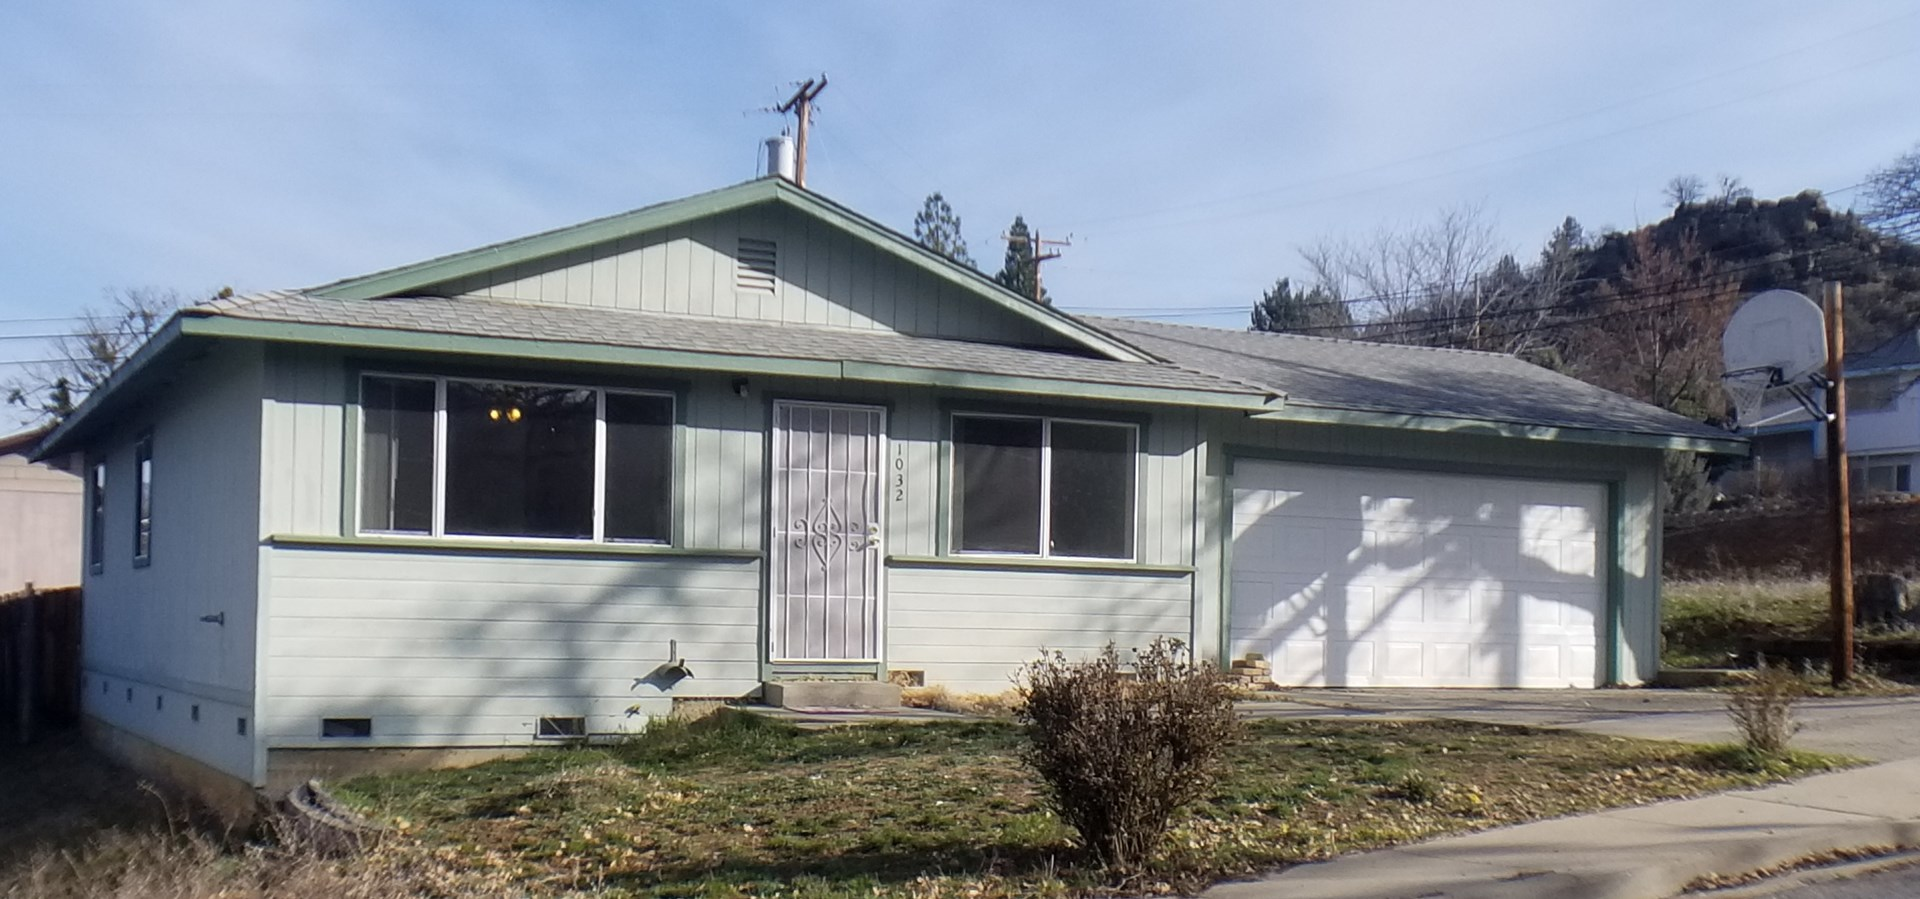 Home for Sale Yreka/Northern California/Siskiyou County